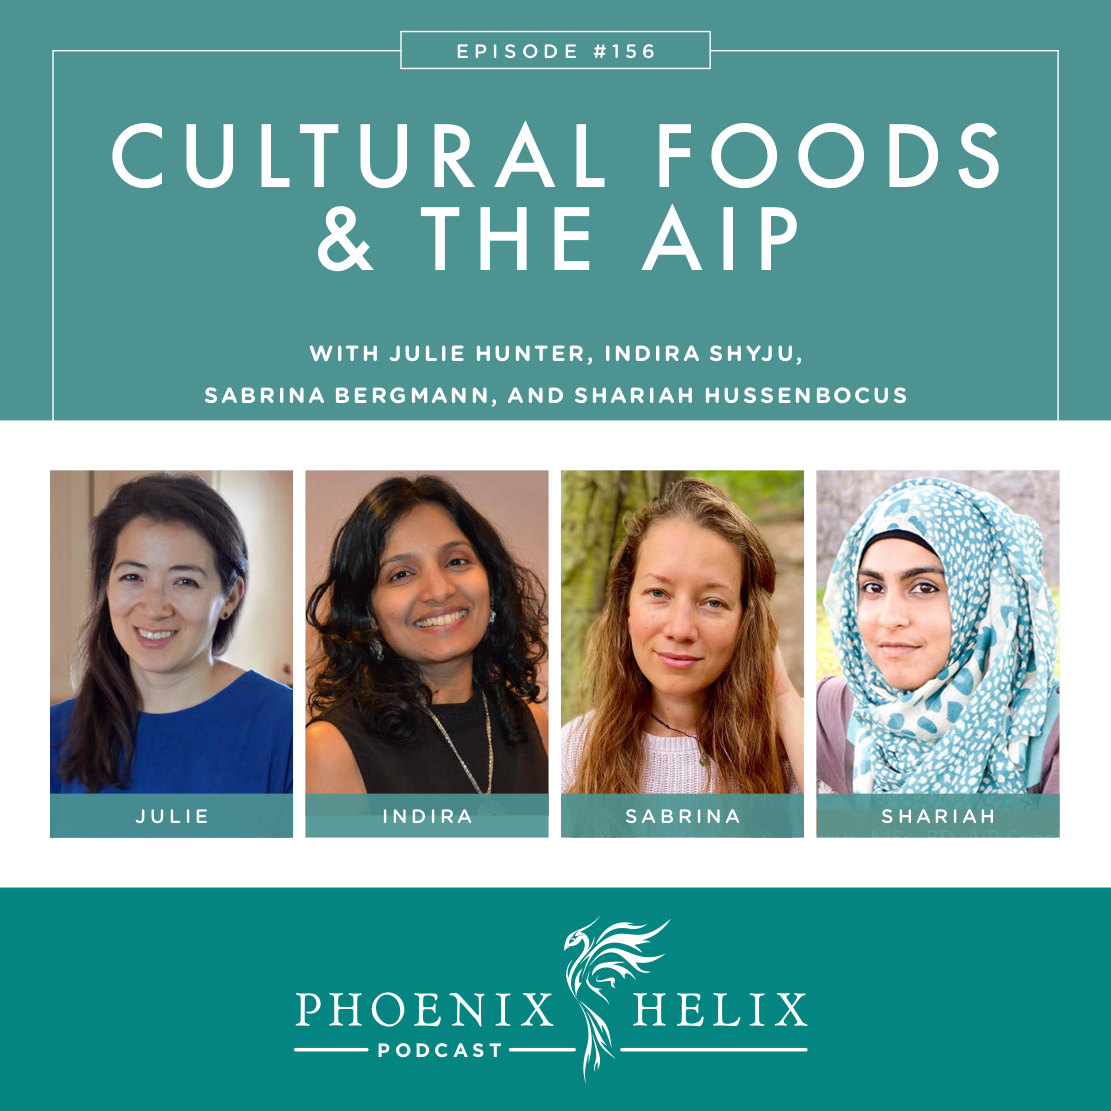 Cultural Foods and the Paleo Autoimmune Protocol (AIP) | Phoenix Helix Podcast